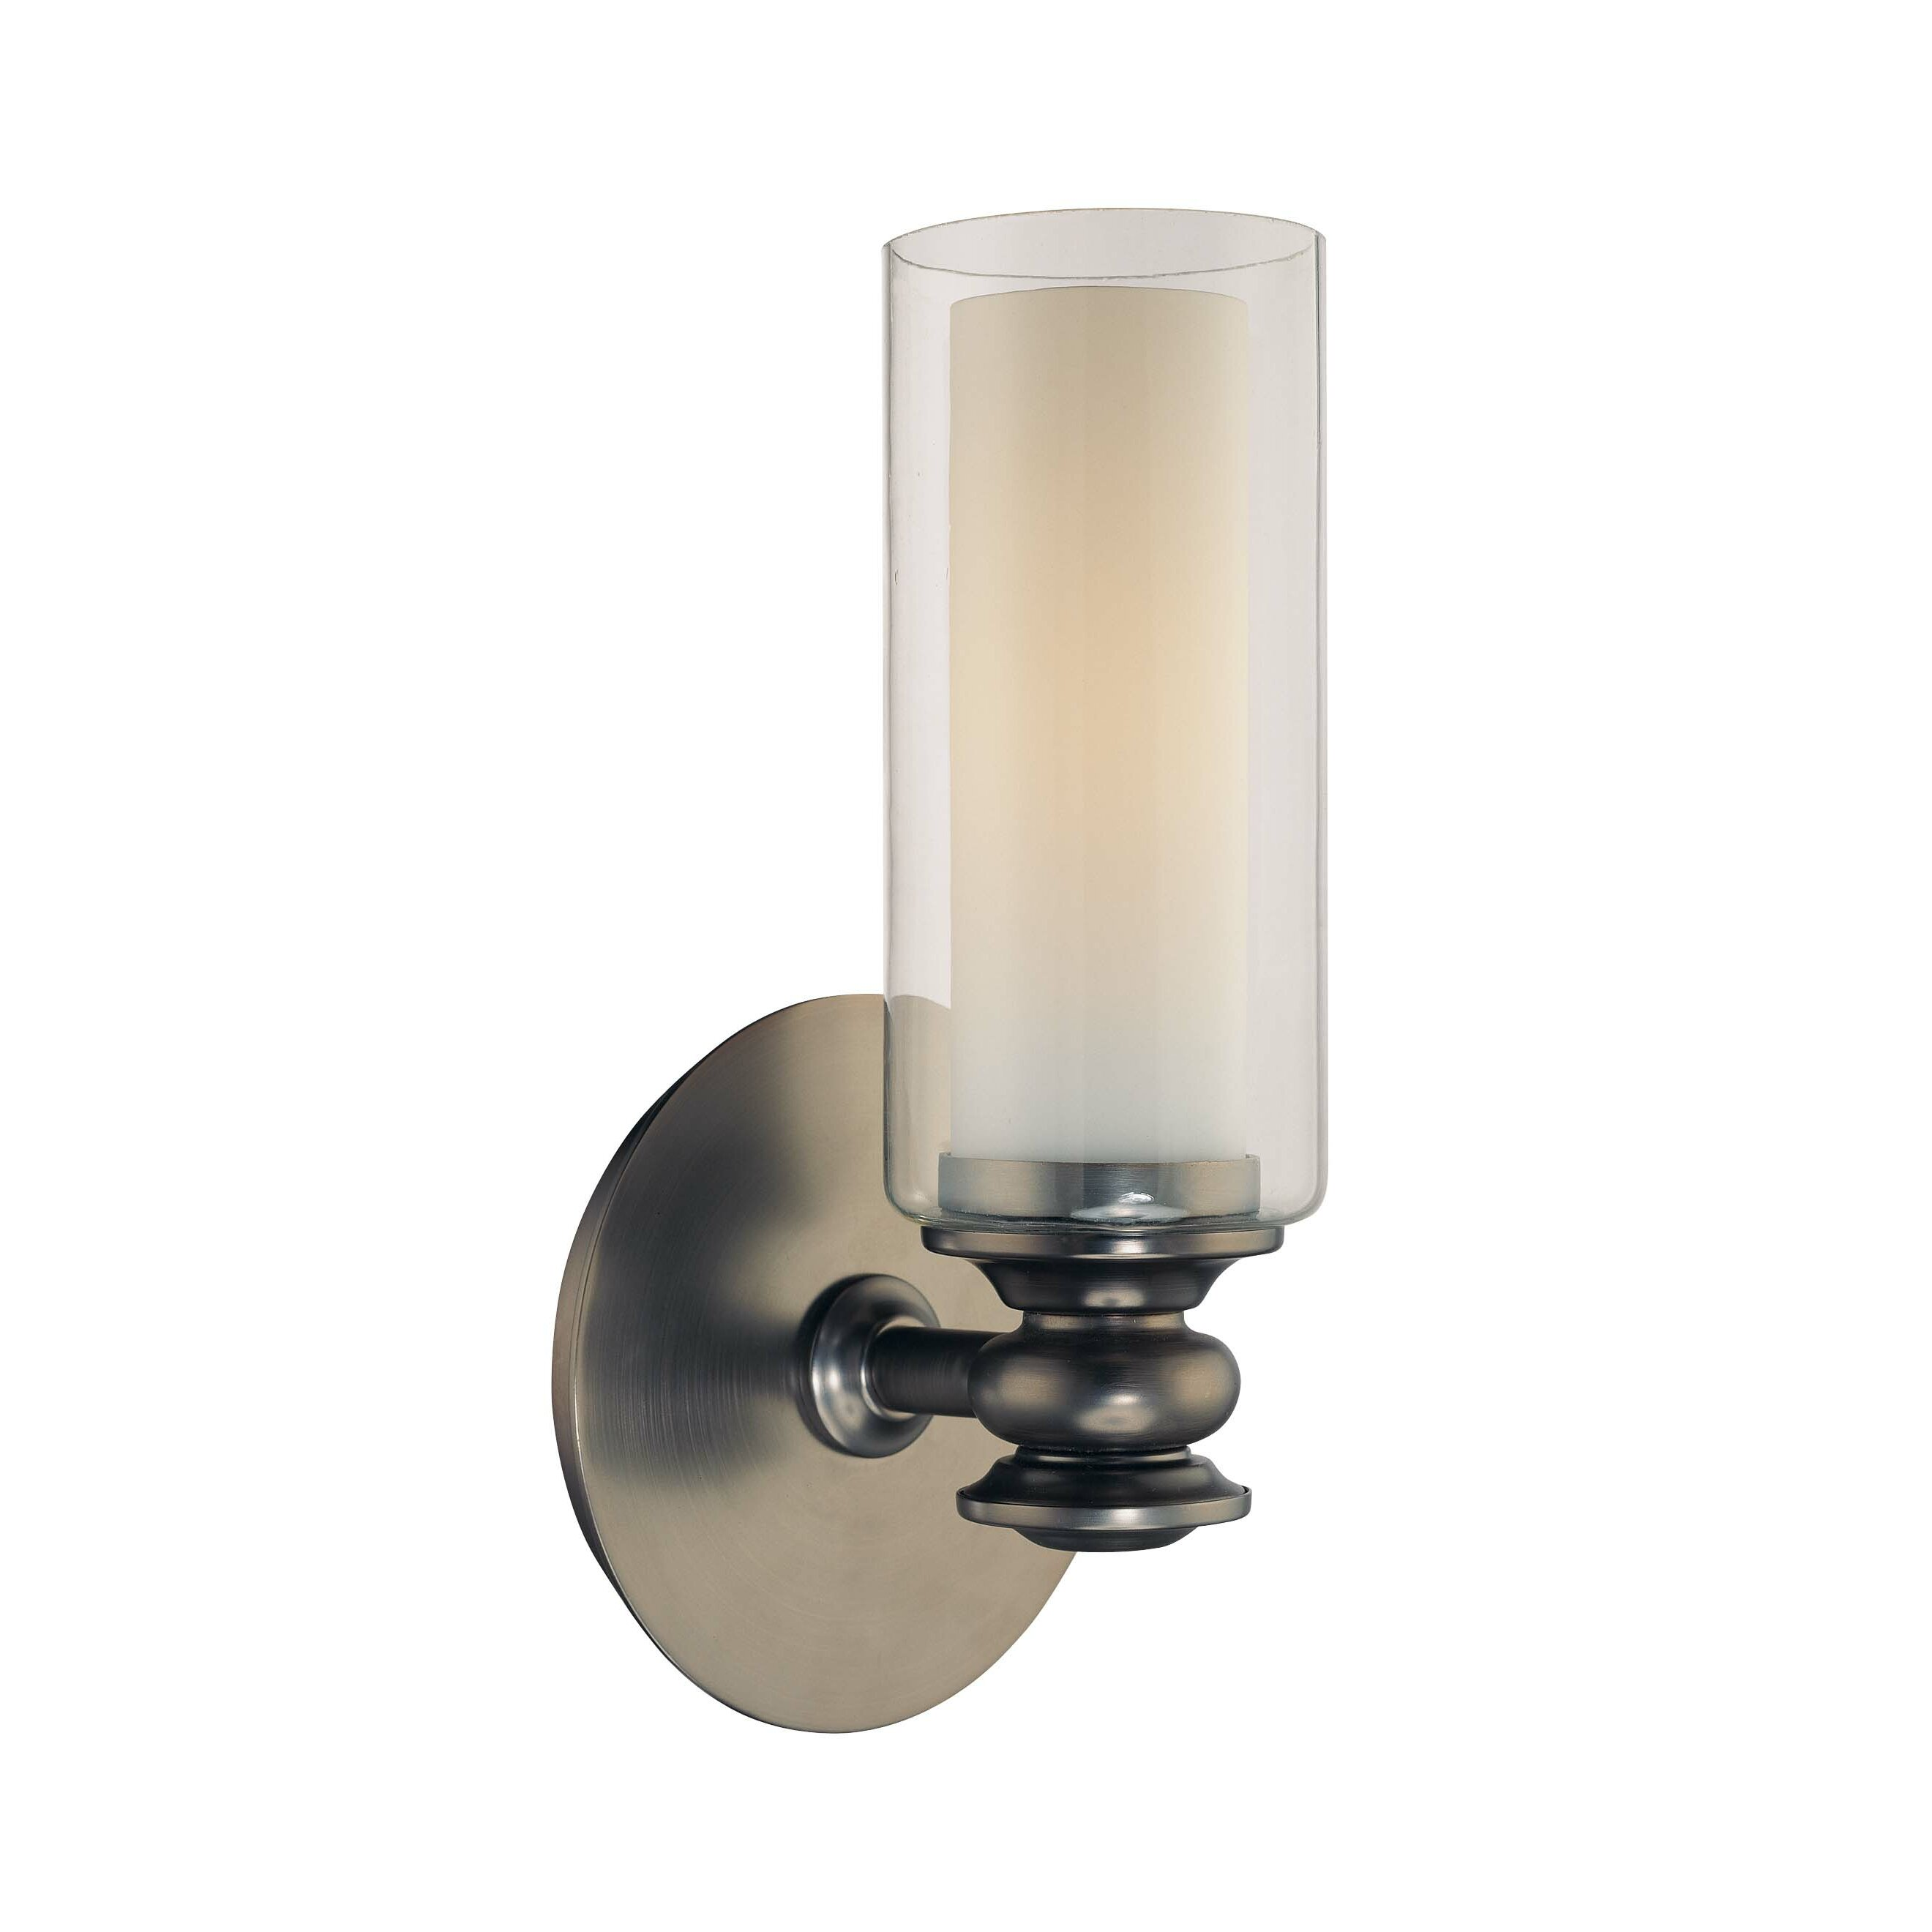 Wall Sconces At Wayfair : Minka Lavery Harvard Court 1 Light Wall Sconce & Reviews Wayfair